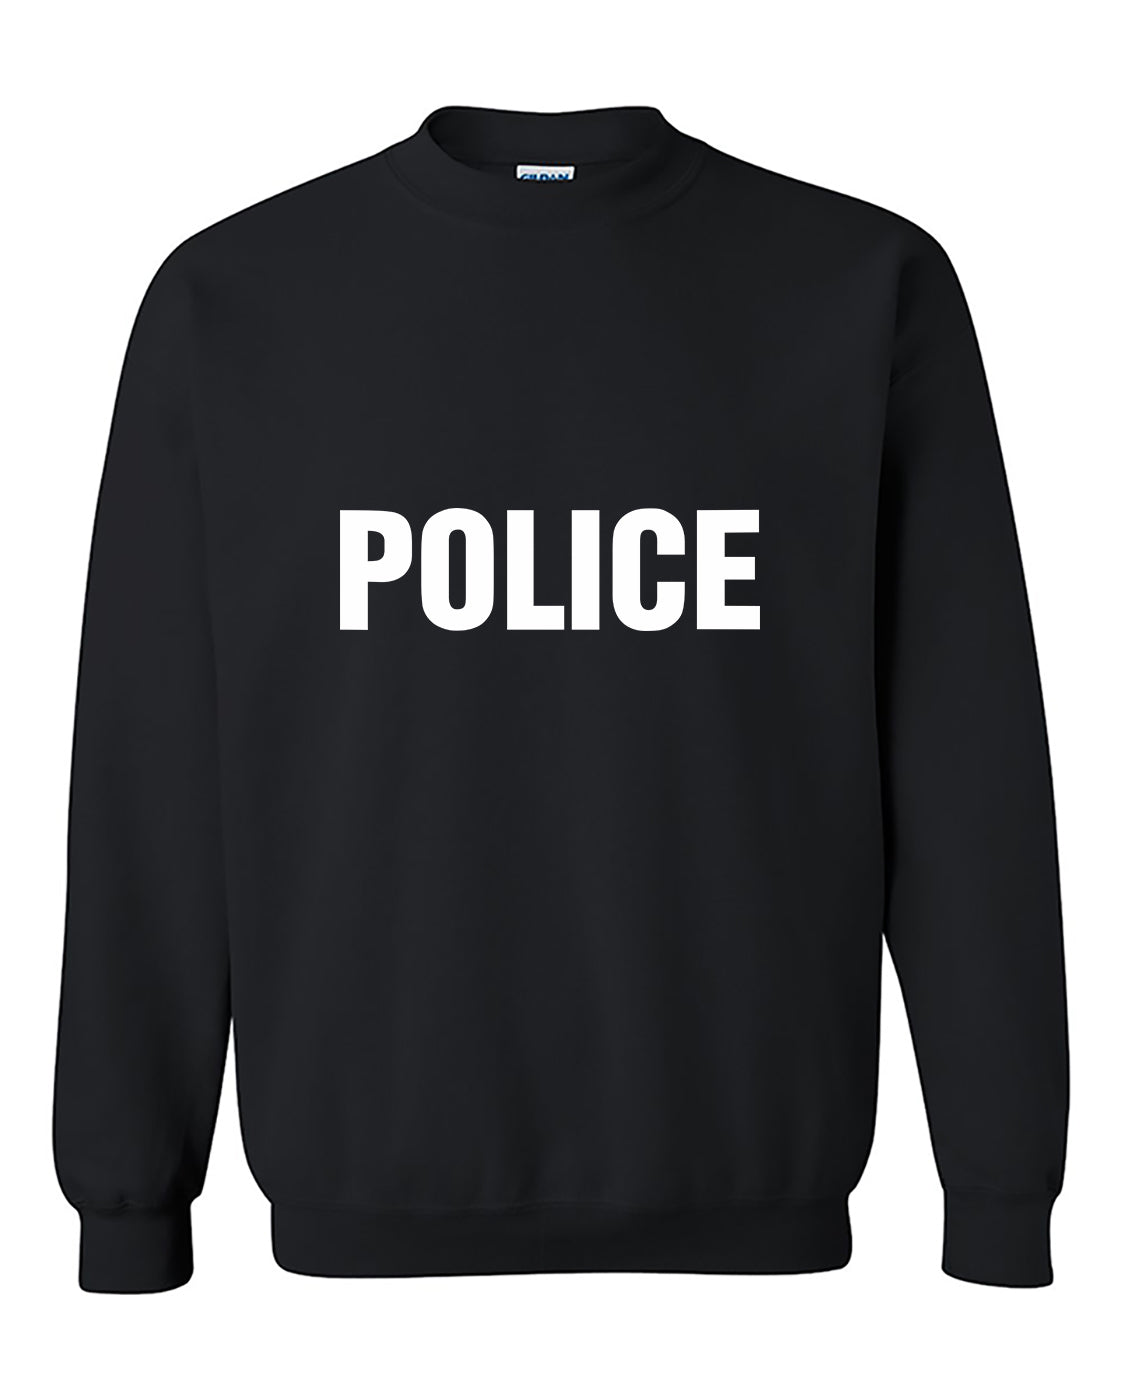 POLICE - novelty duty law enforcement Crewneck Sweater